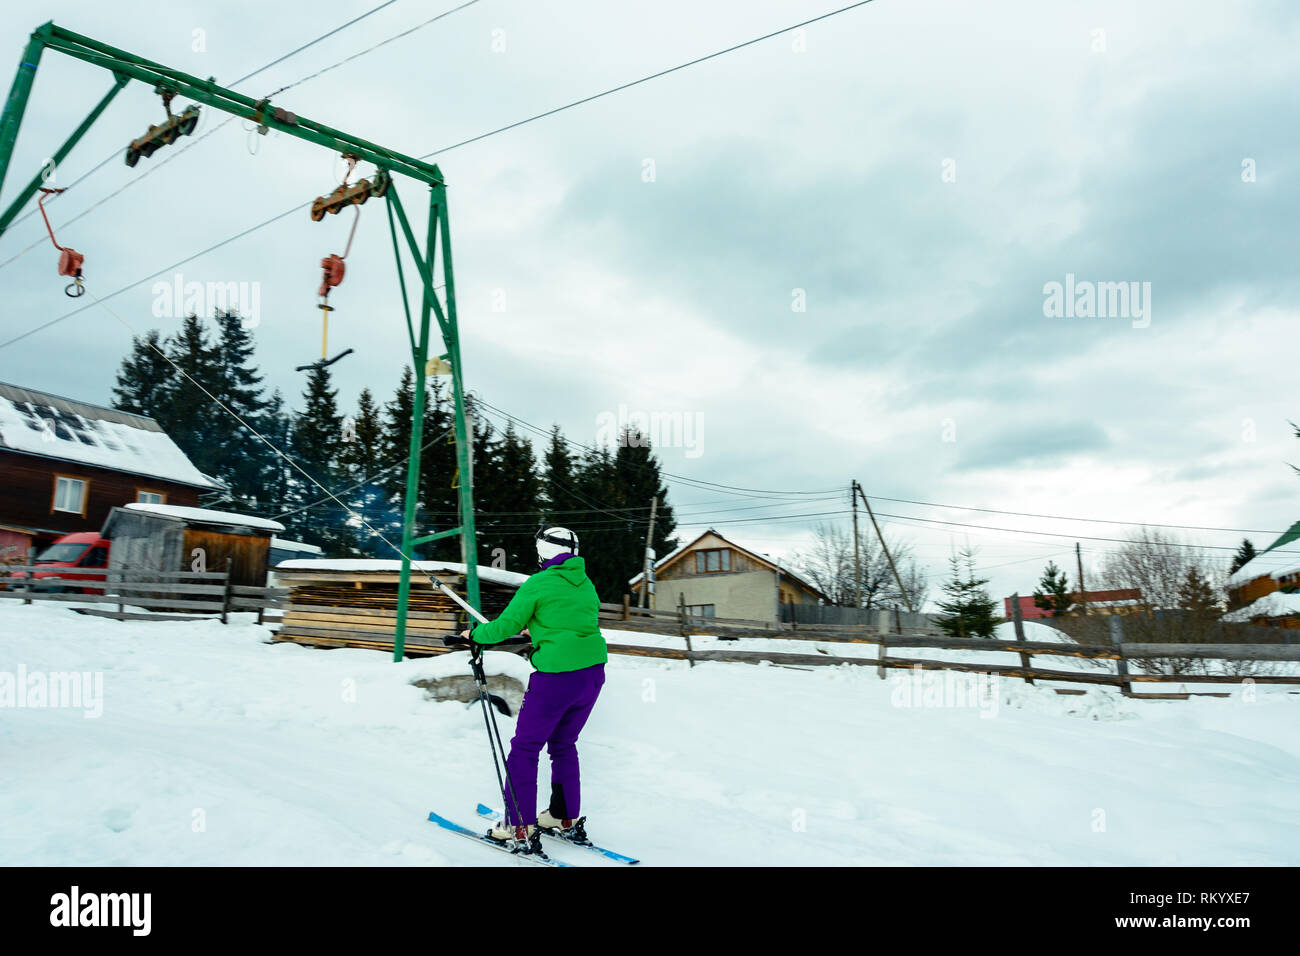 A skier silhouette in a ski suit and ski goggles slowly moving uphill on an anchor ski lift leaving traces in the snow on a cloudy blue sky background - Stock Image